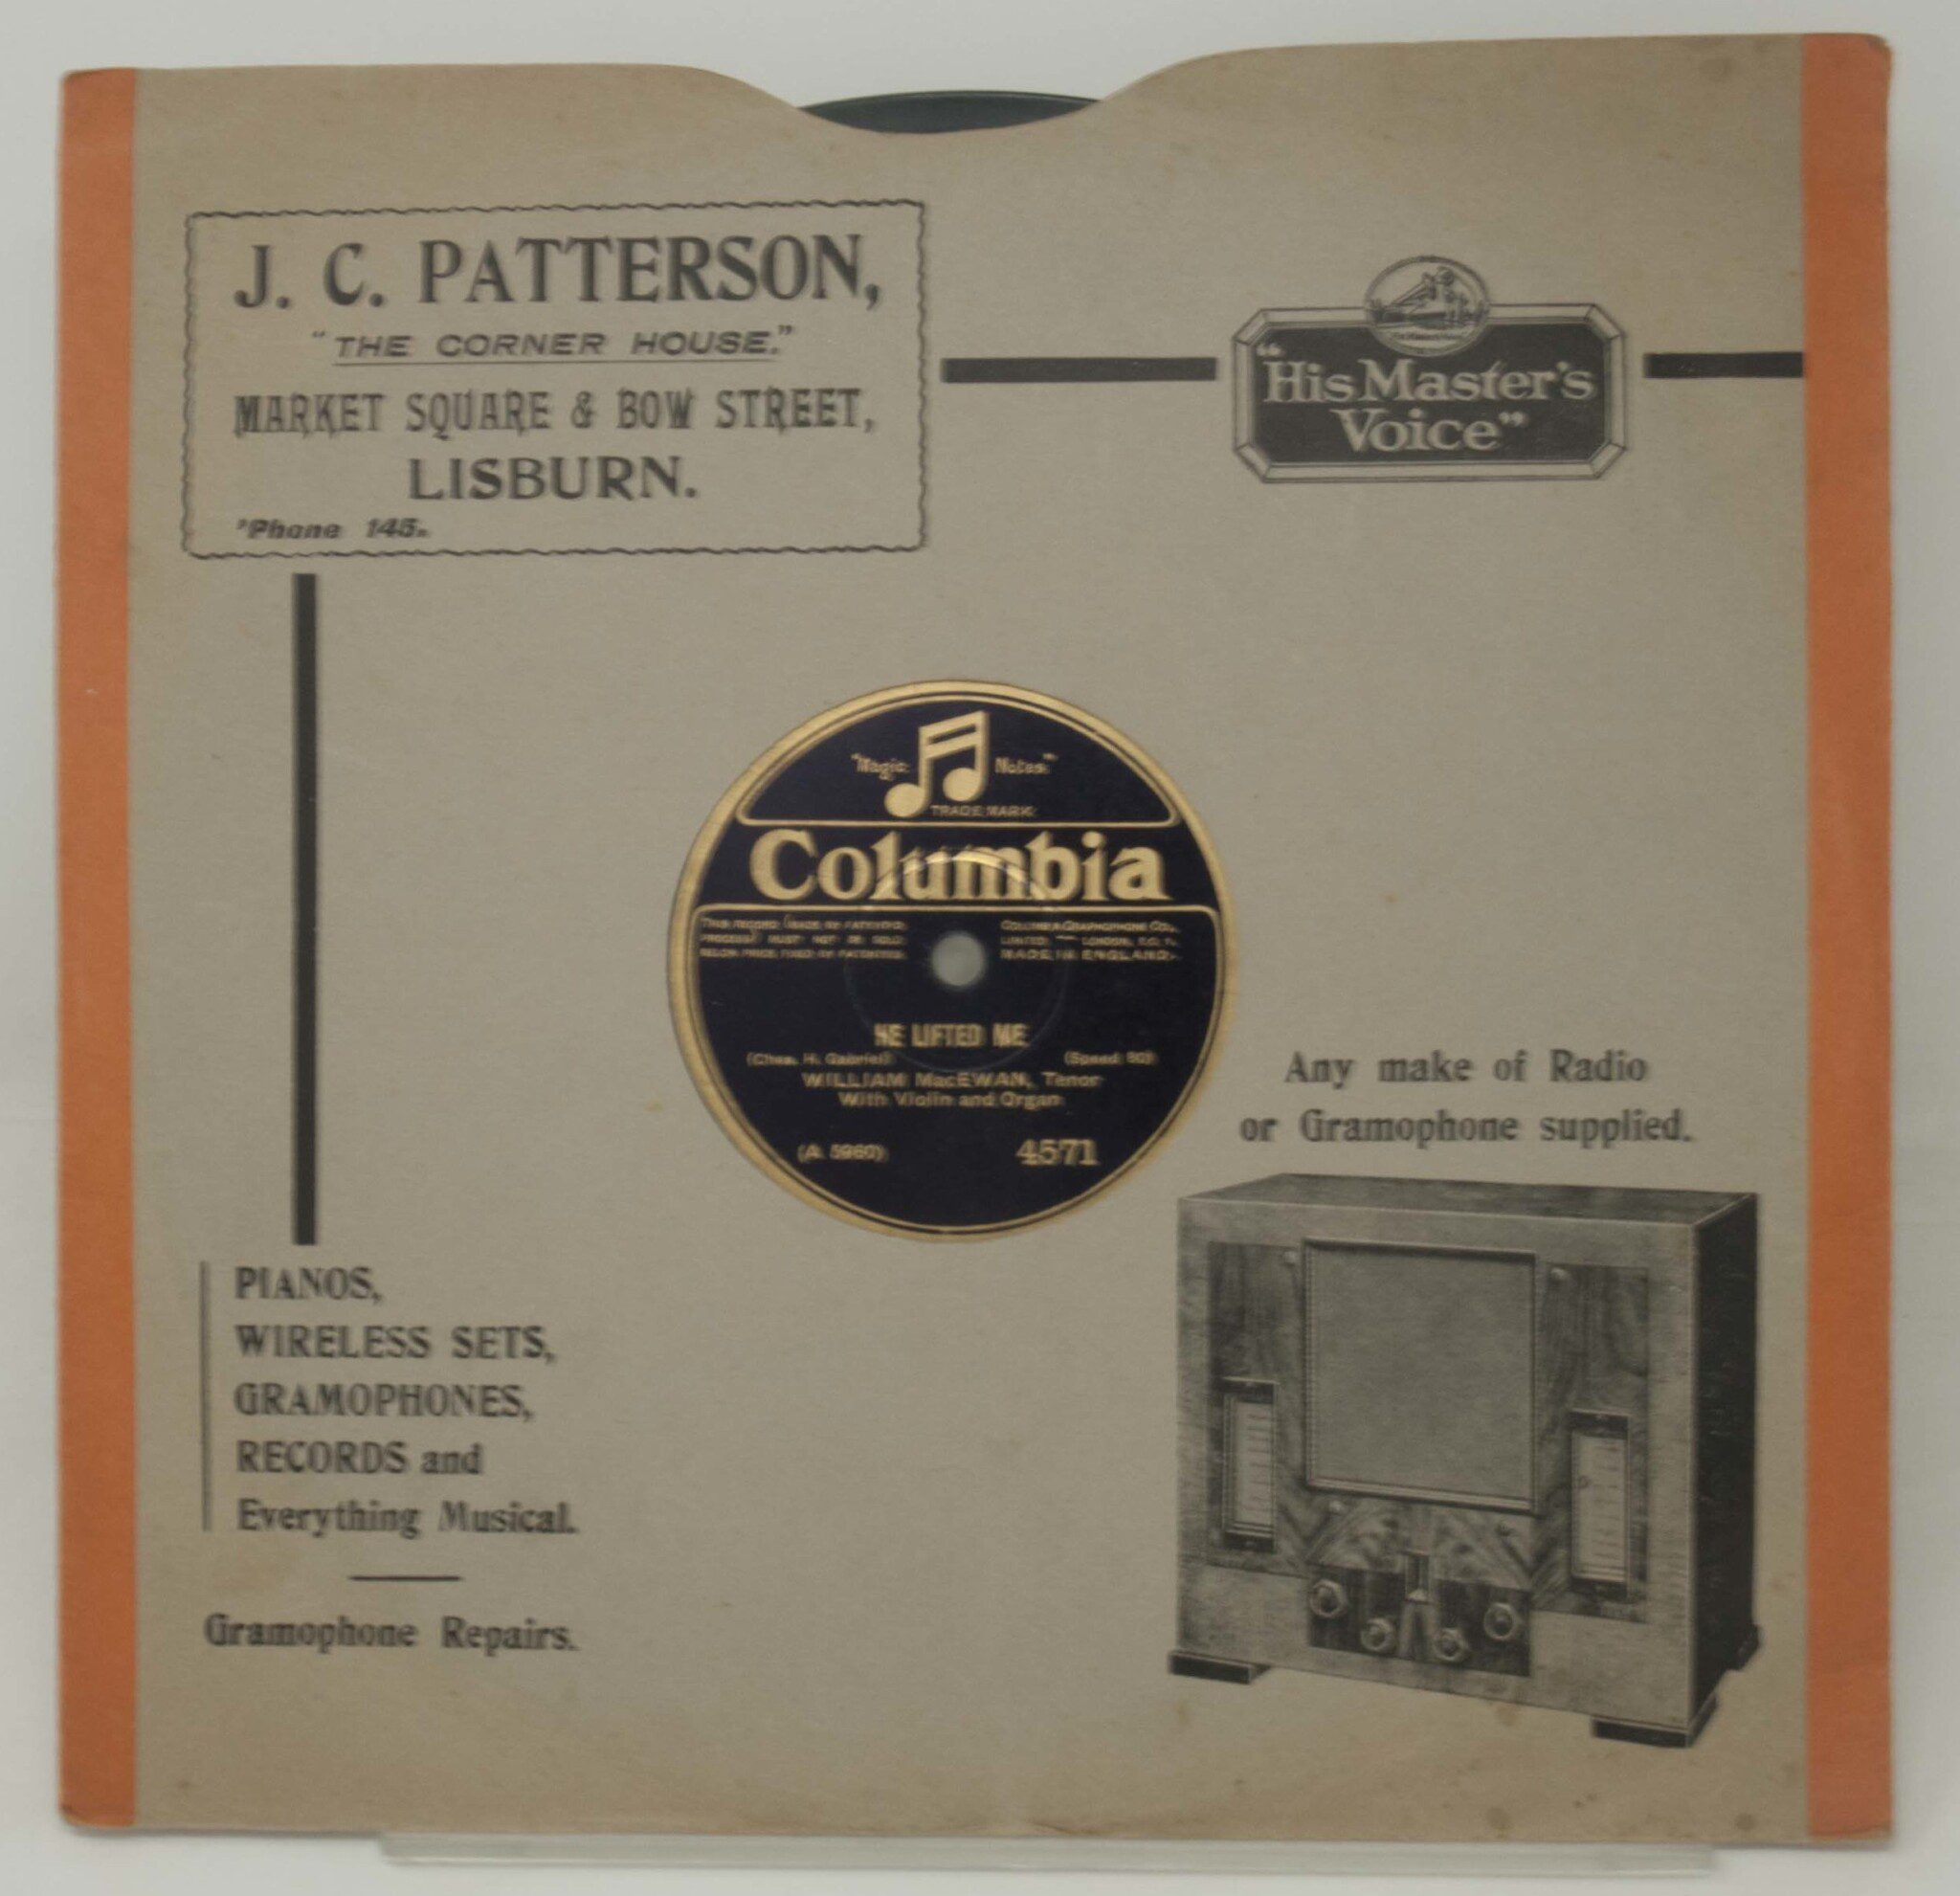 Object, J.C. Patterson, Gramophone Record